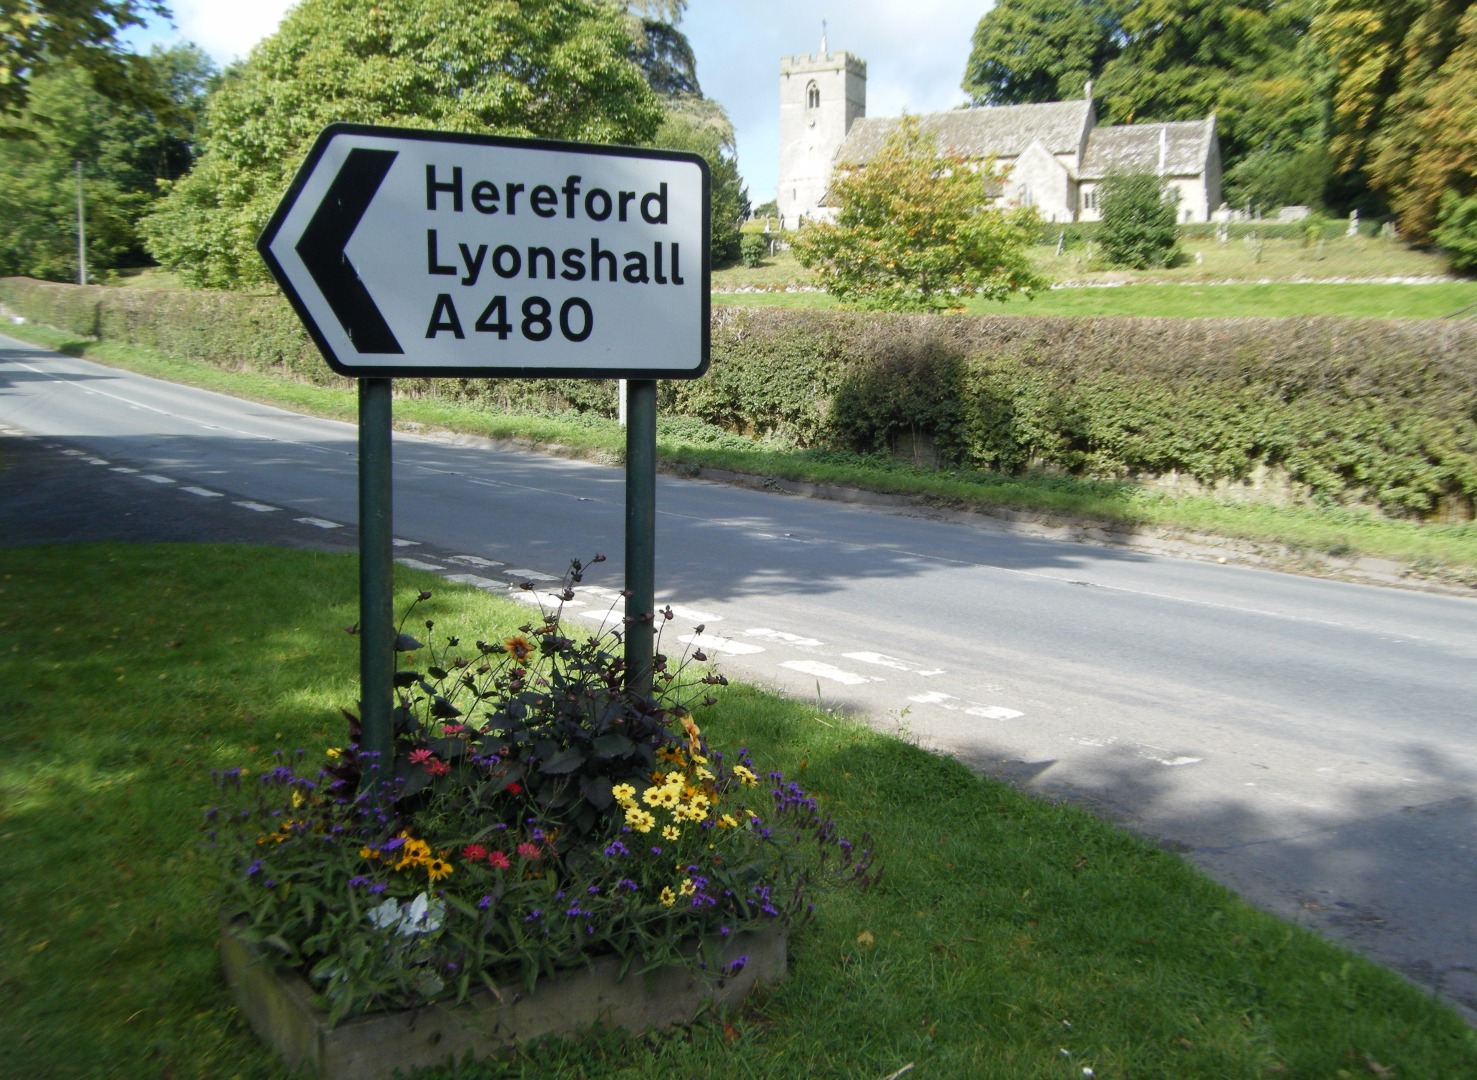 Lyonshall church and roadsign